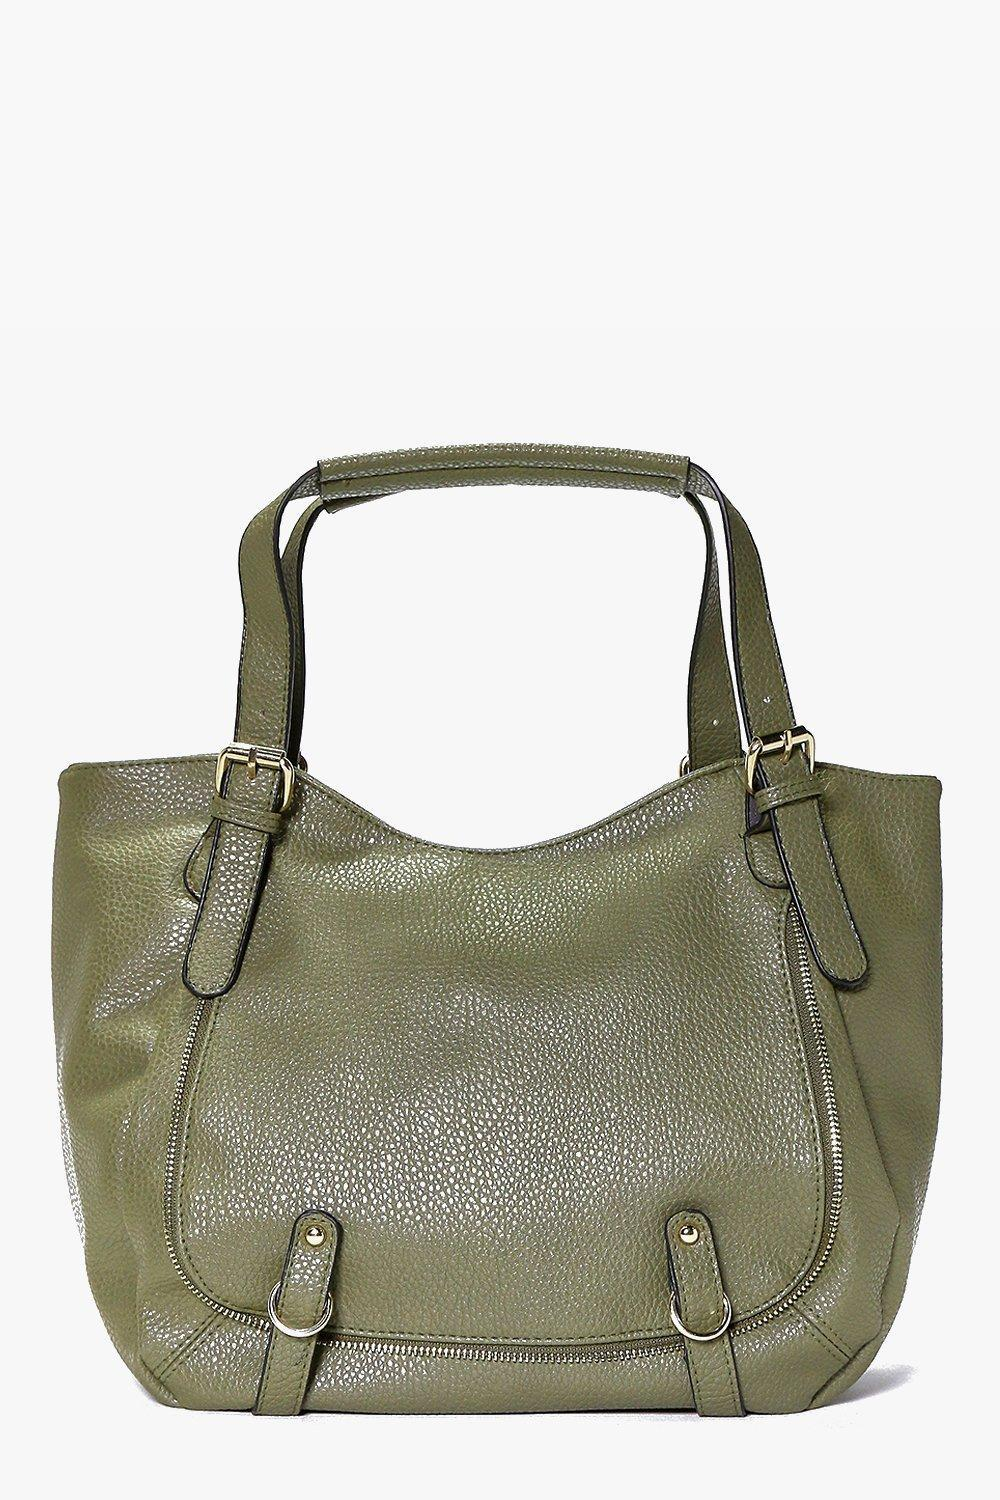 Pocket Detail Slouch Day Bag Khaki - predominant colour: khaki; occasions: casual, creative work; type of pattern: standard; style: tote; length: handle; size: oversized; material: faux leather; pattern: plain; finish: plain; season: s/s 2016; wardrobe: investment